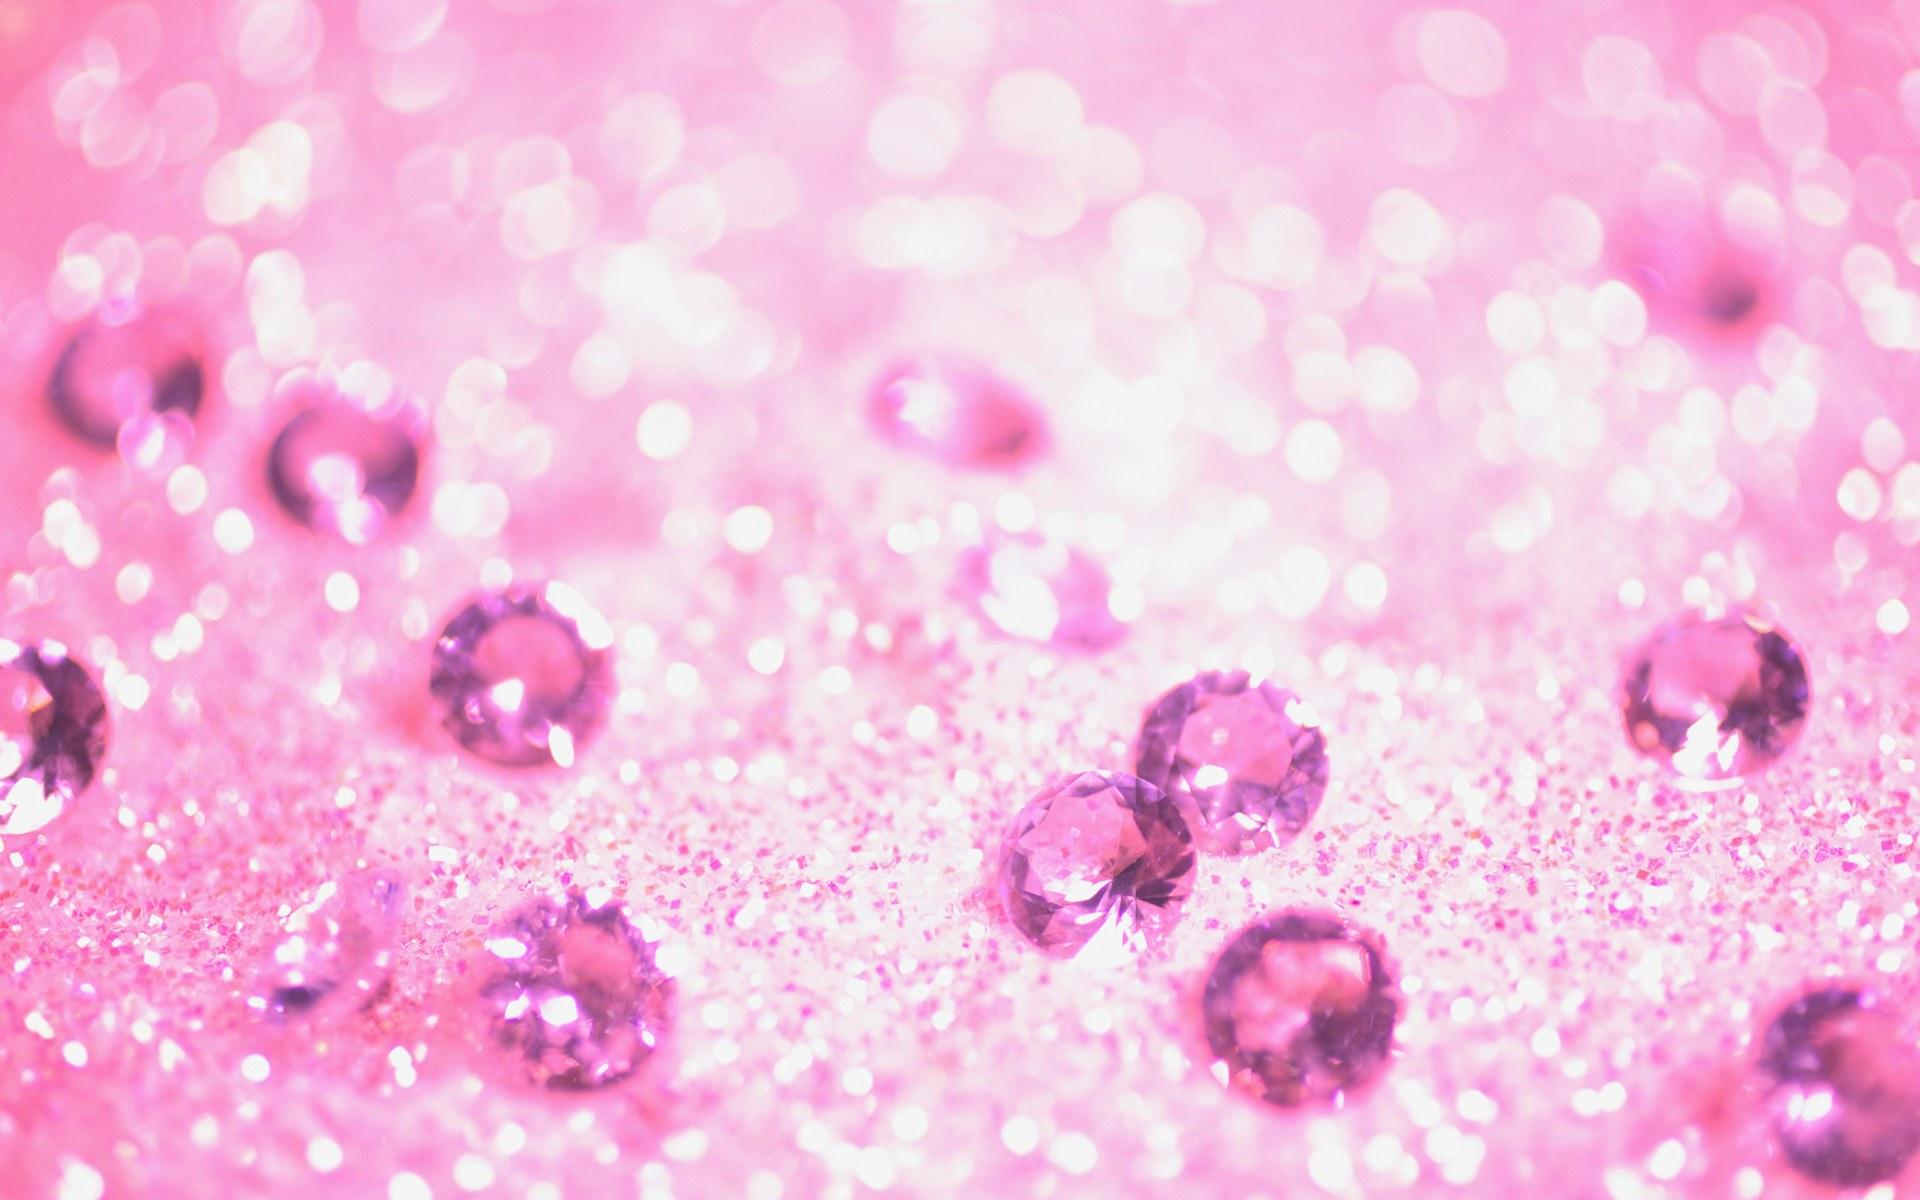 ... Crystals - Romantic Sparkling Backgrounds 1920*1200 NO.35 Wallpaper